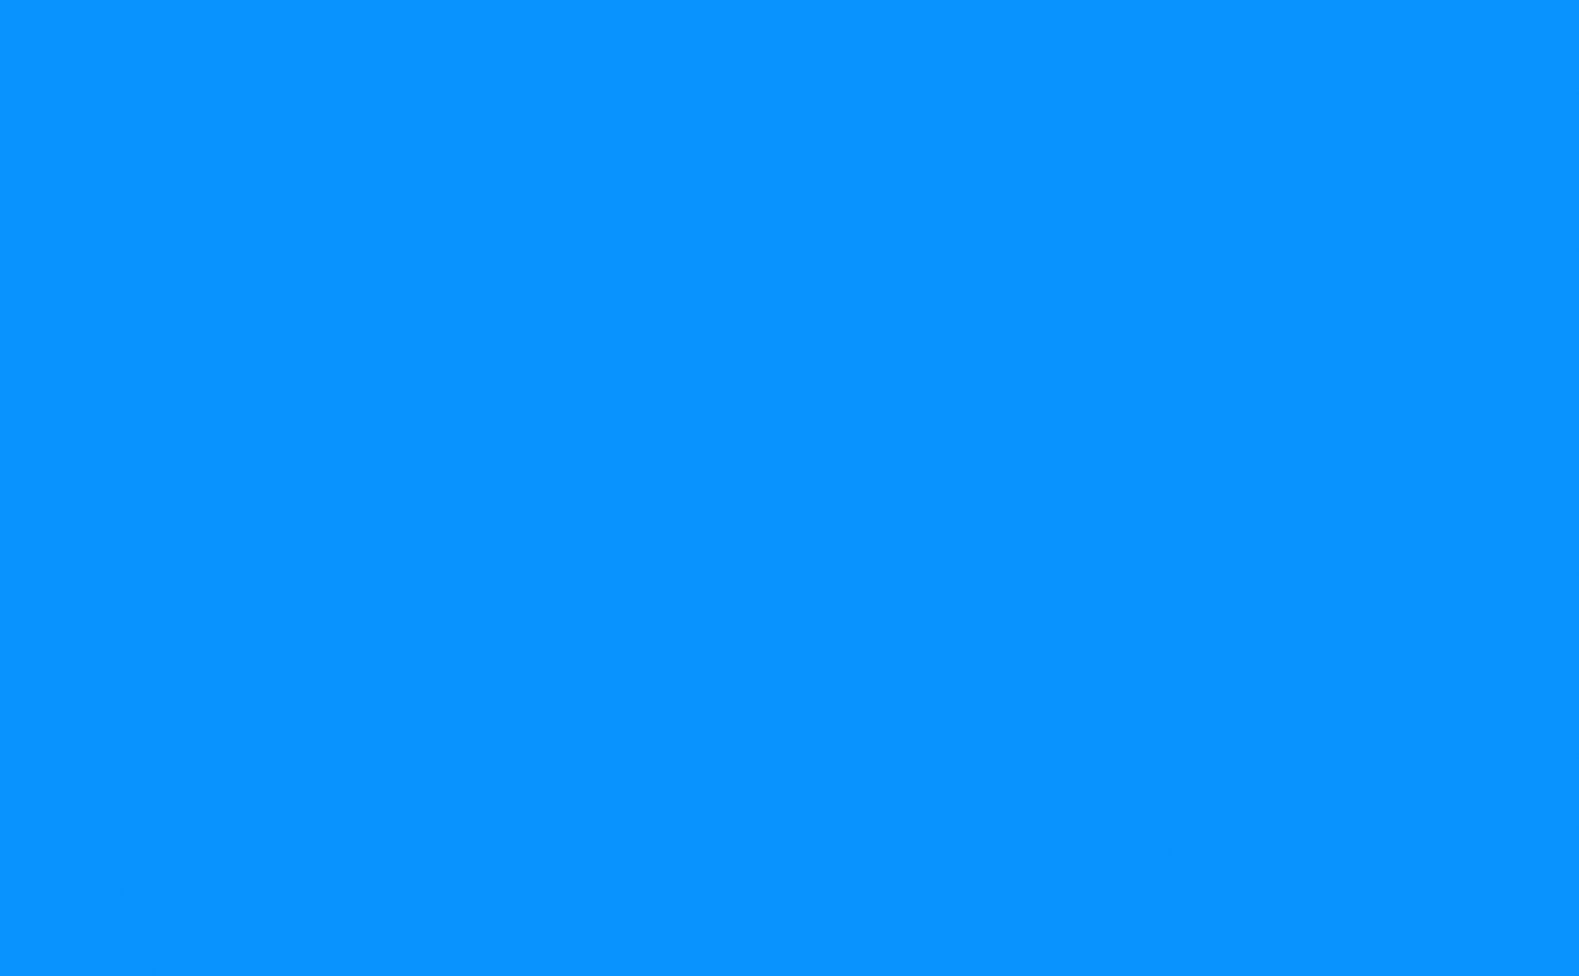 blue background solid colors | image wallpaper collections